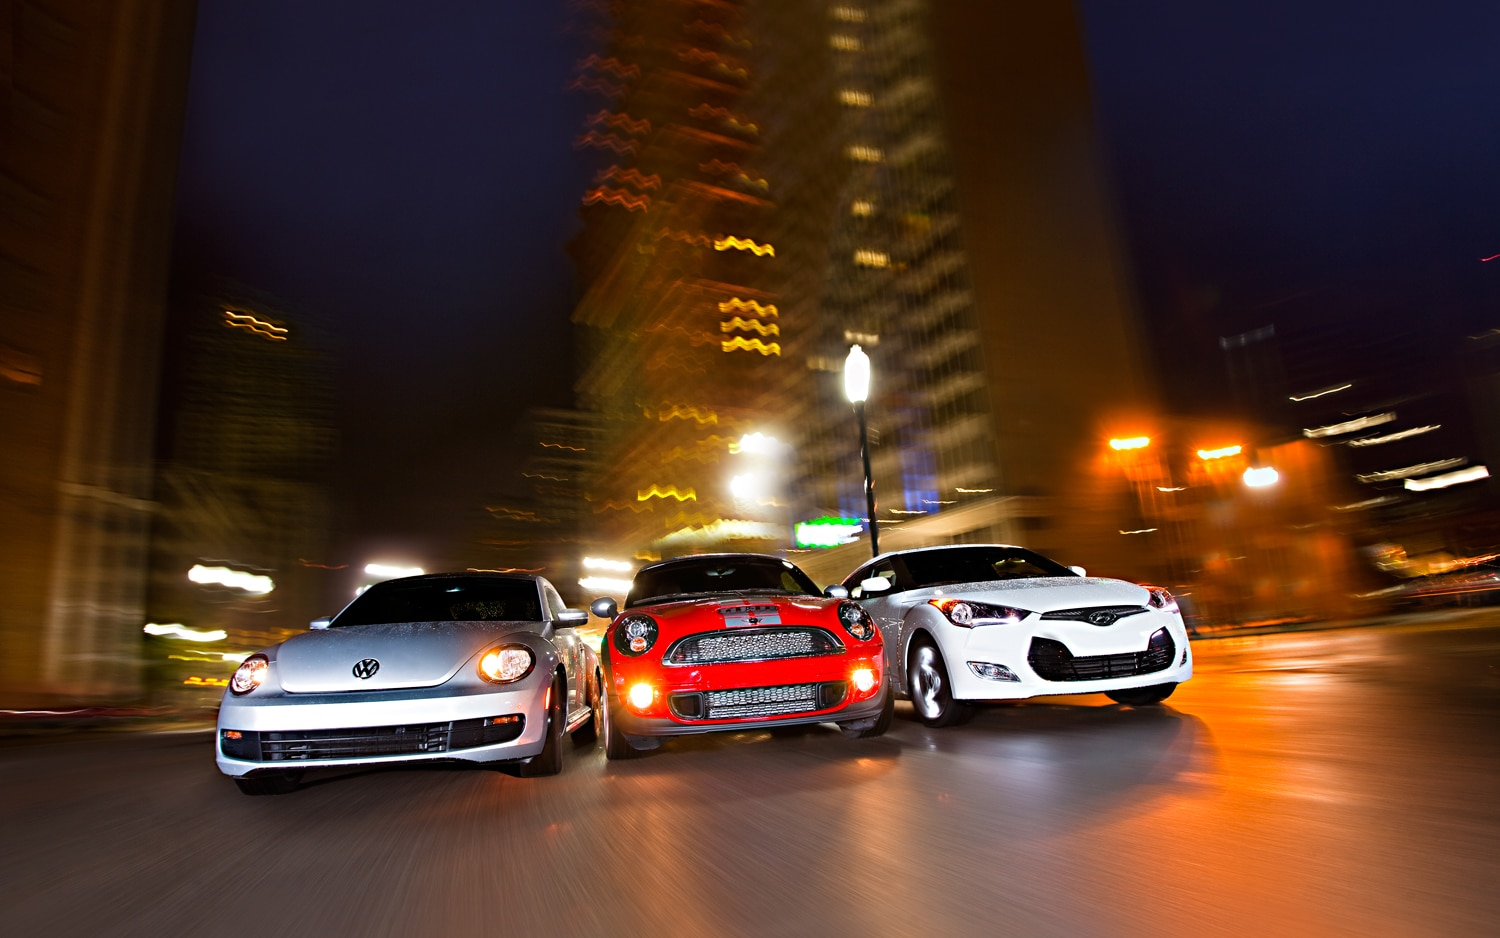 Volkswagen Beetle Mini Cooper Coupe And Hyundai Veloster Front View